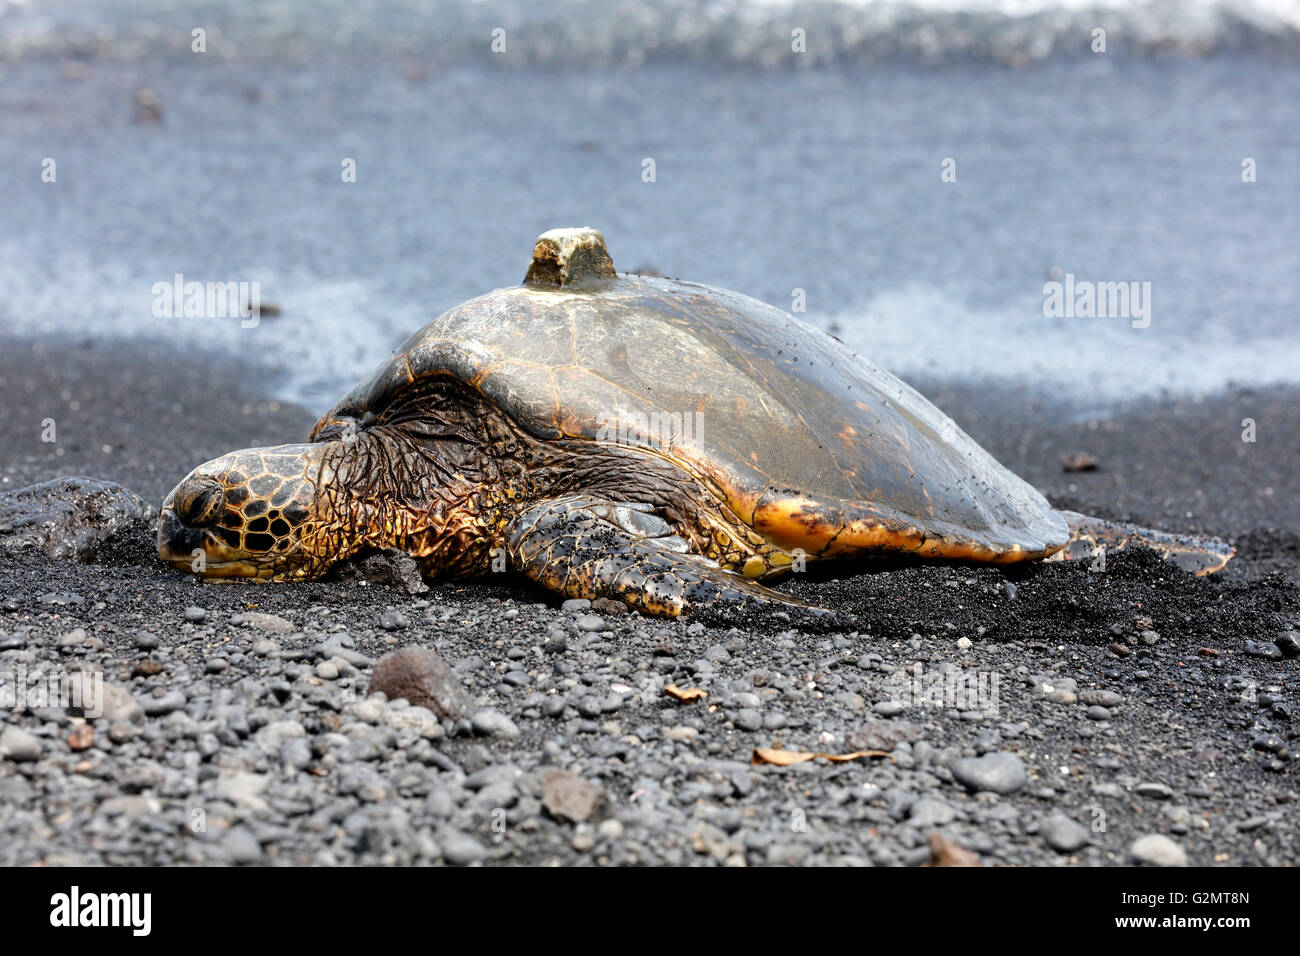 Green sea turtle (Chelonia mydas) with GPS receiver on shell, Black Sand Beach, Punalu'u, Big Island, Hawaii, - Stock Image